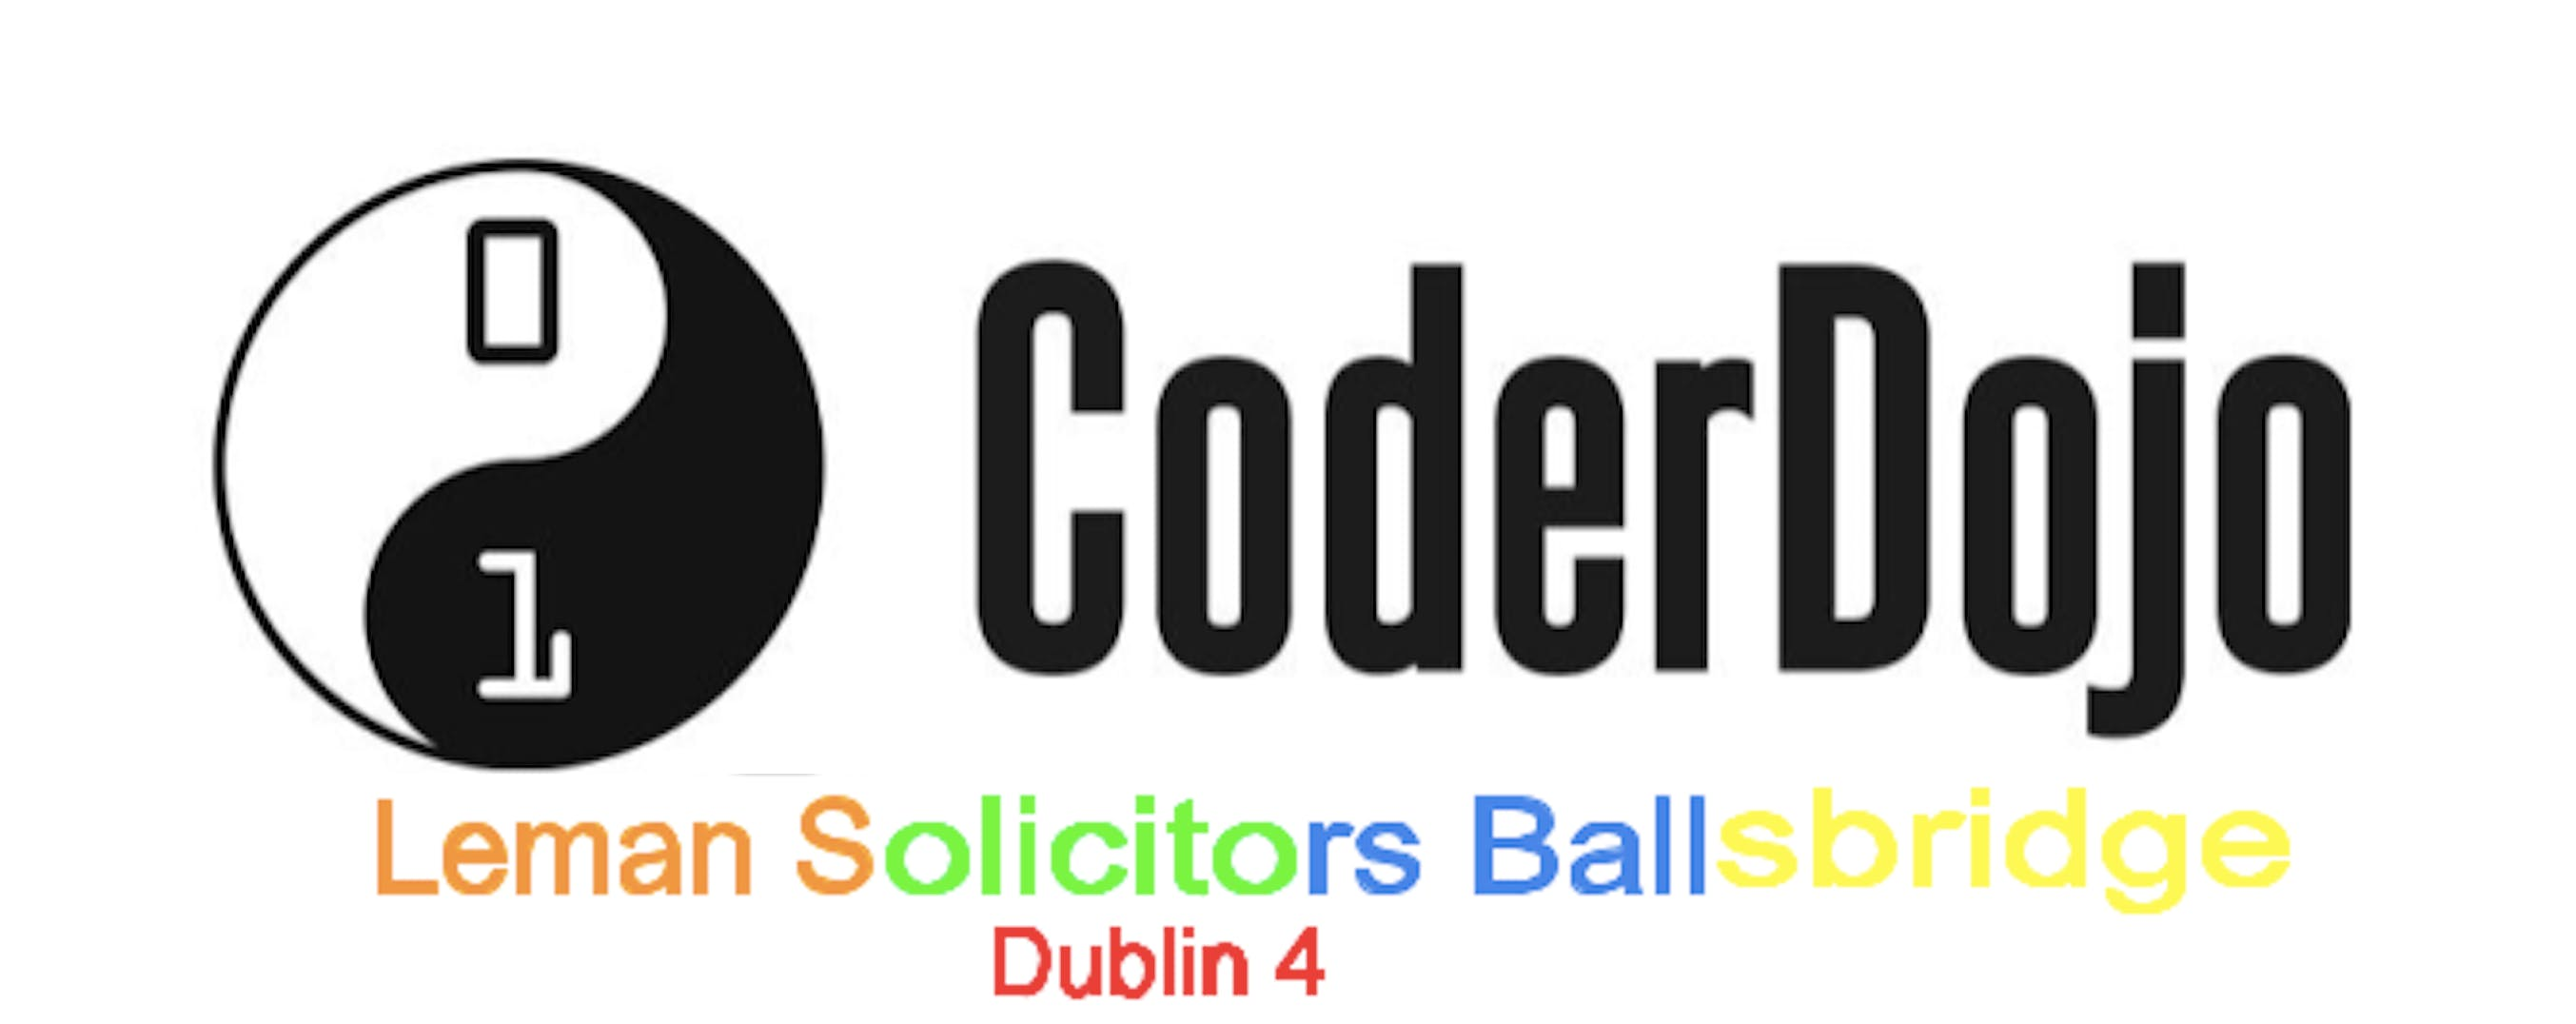 Coderdojo on Saturdays - for 5 weeks - From 22 September to 20 October 2018